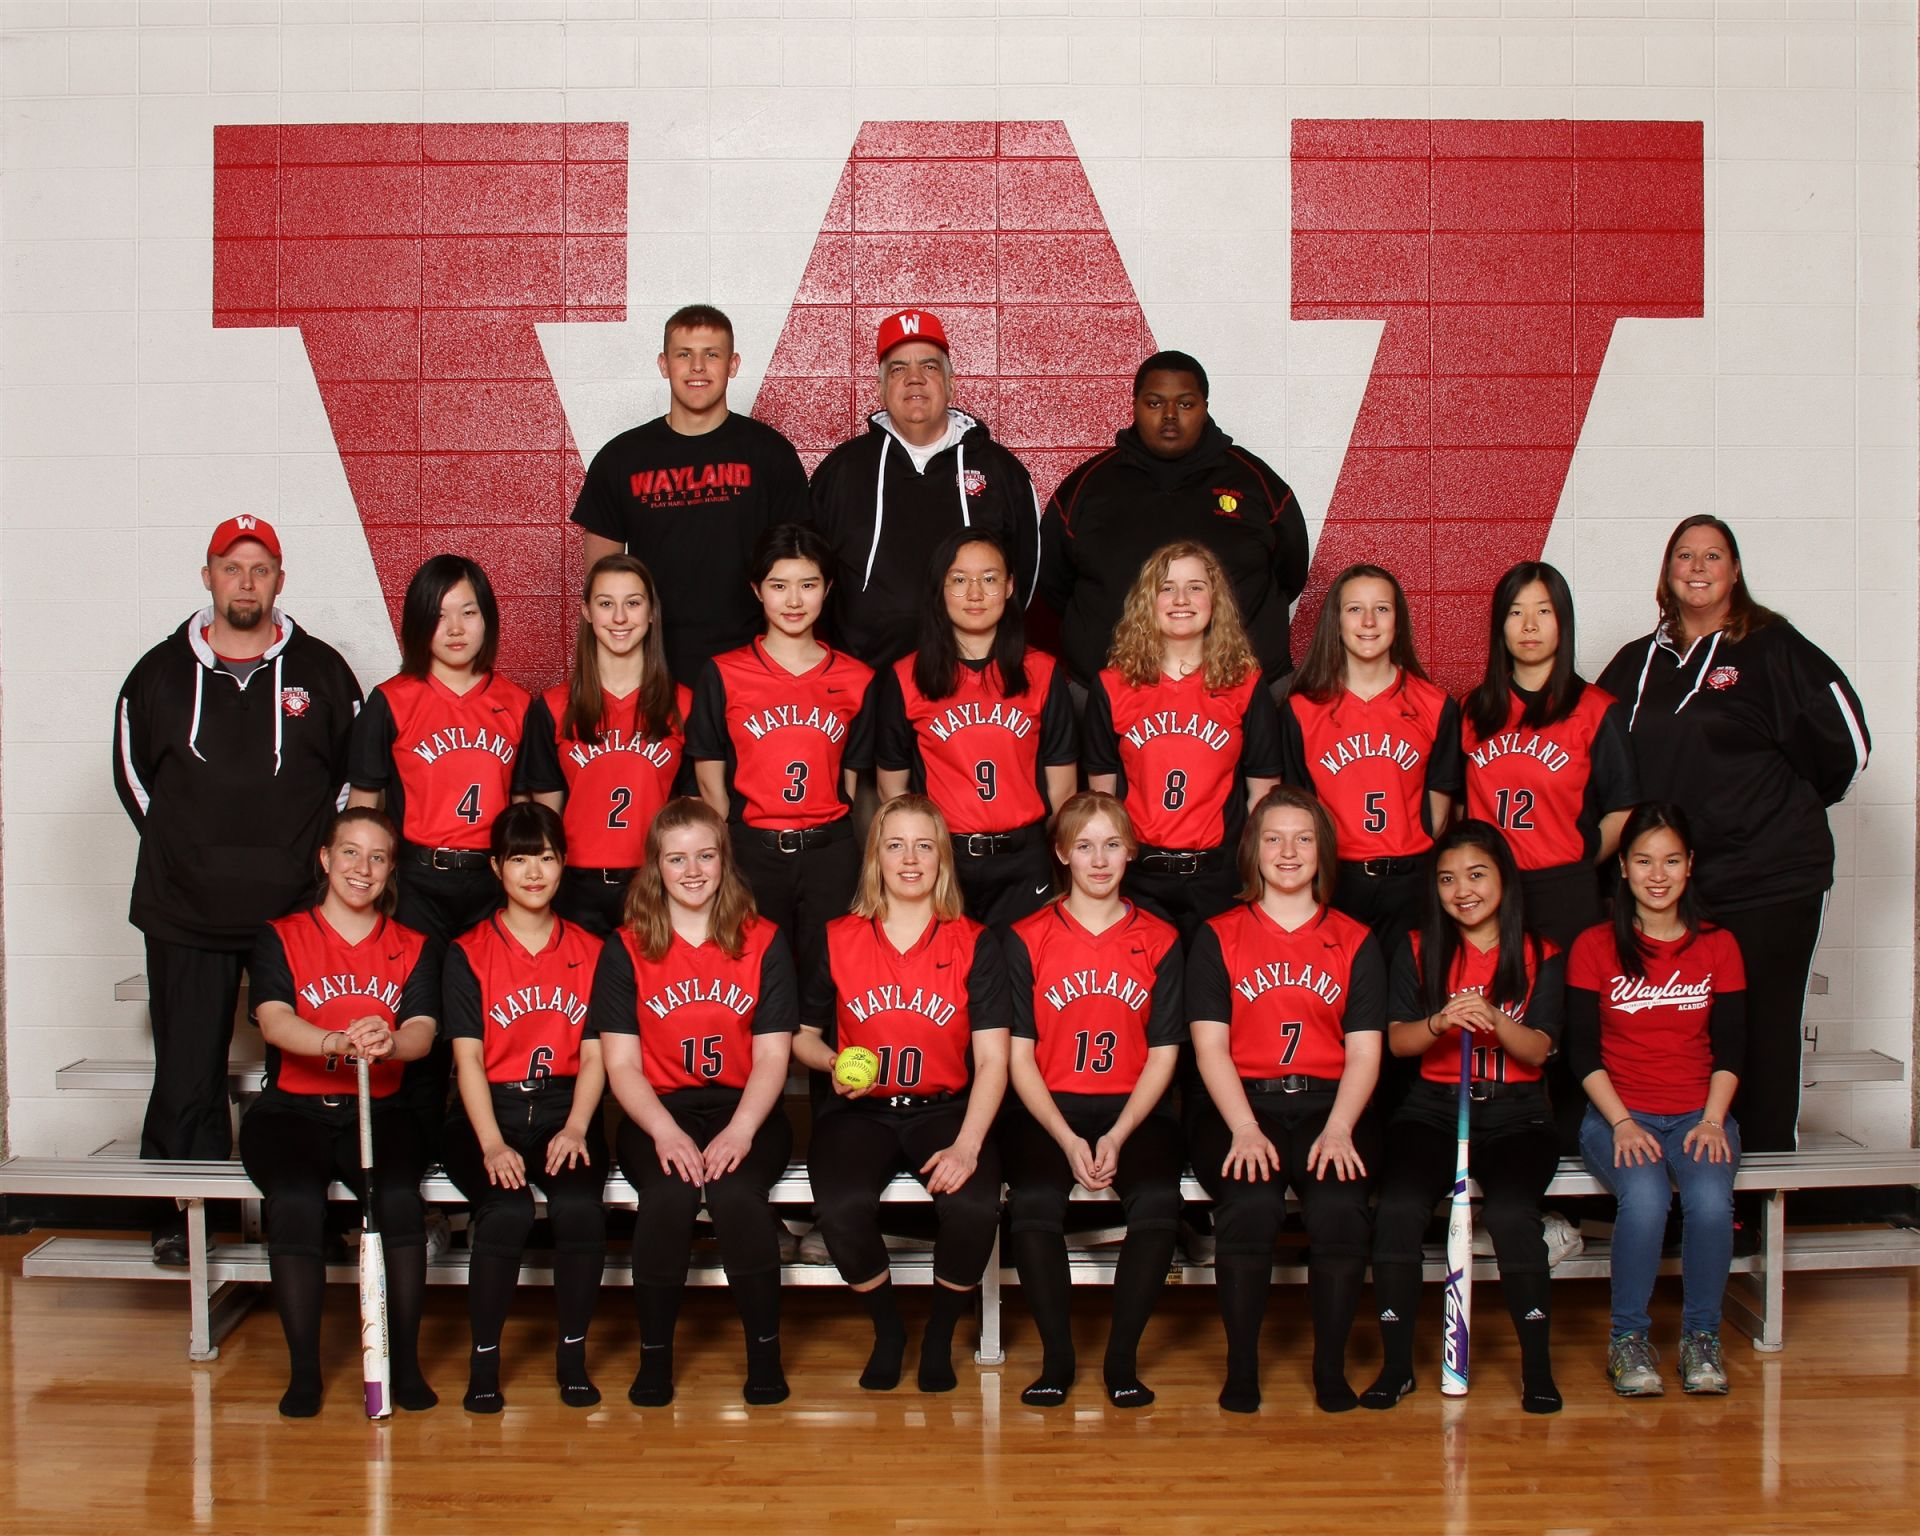 The Wayland Academy 2018 Varsity Softball team.